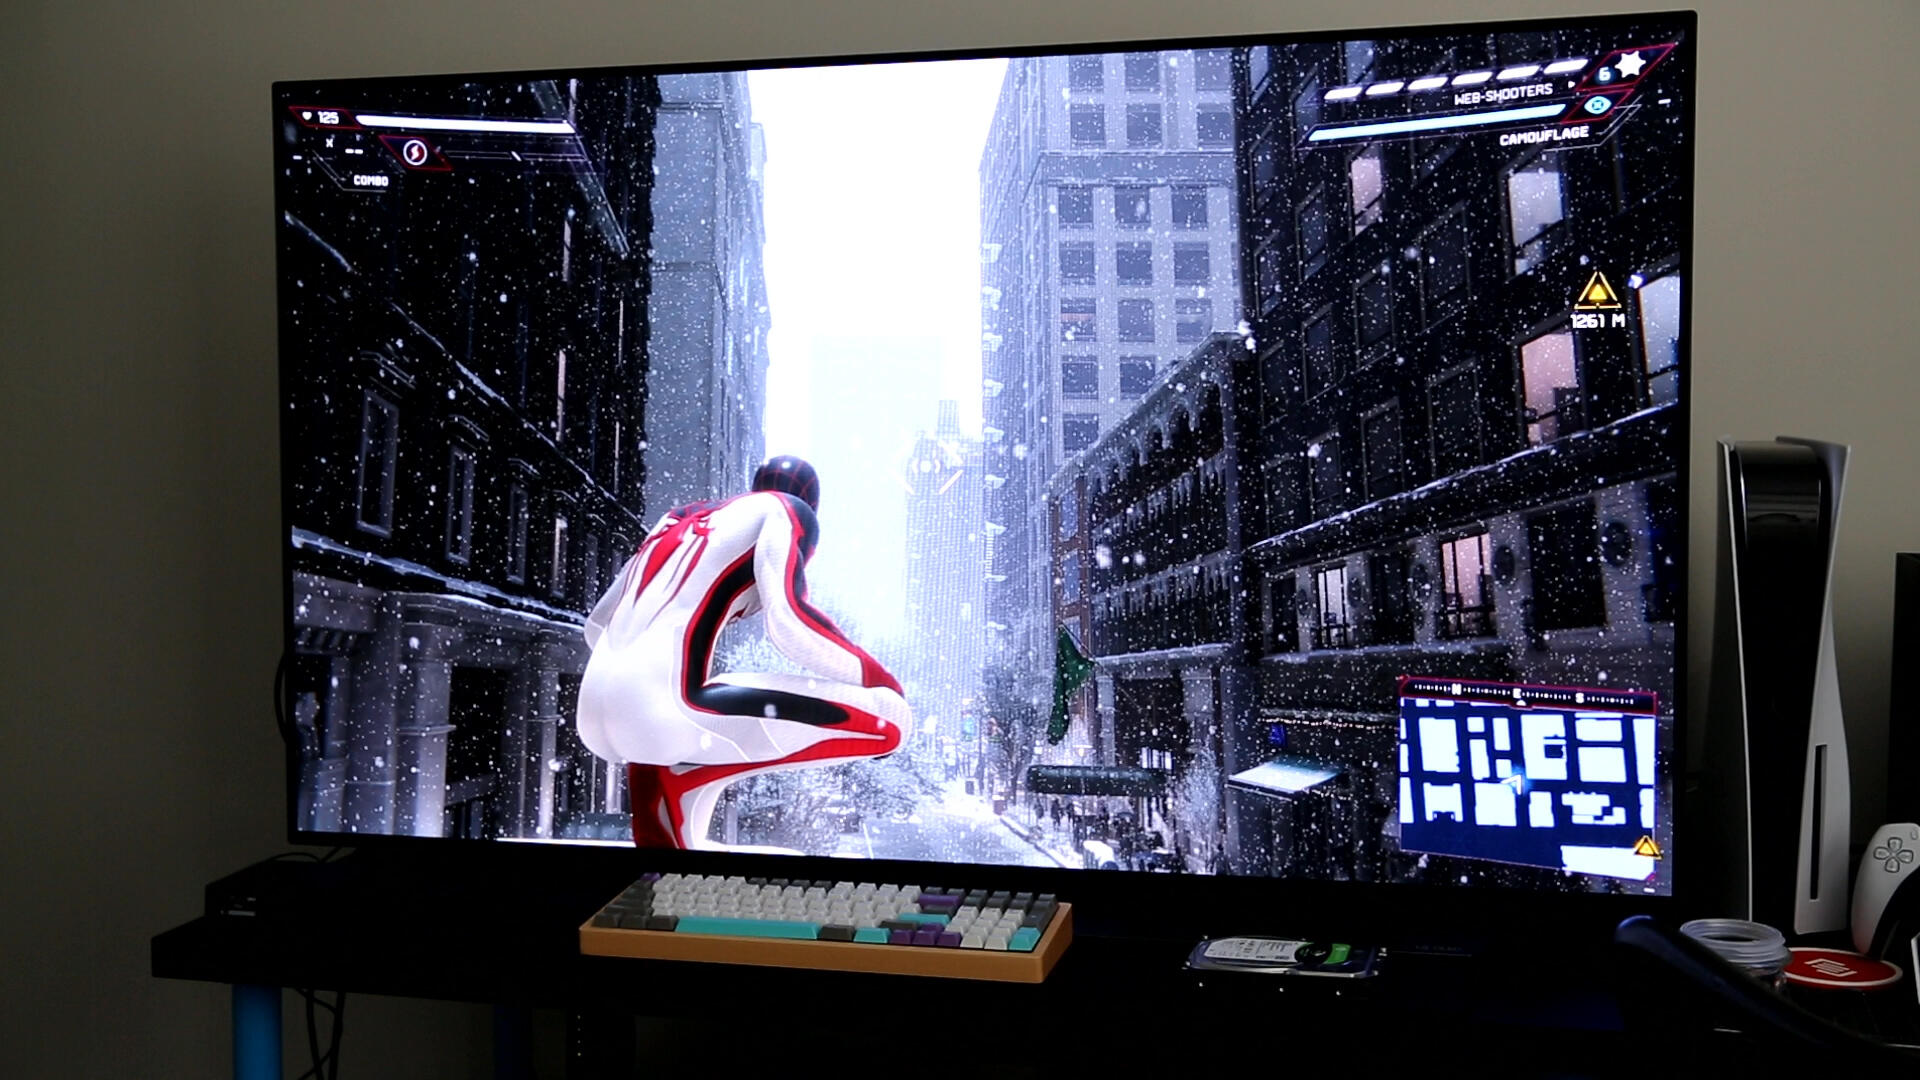 Video: Here's what to look for when buying a TV for gaming